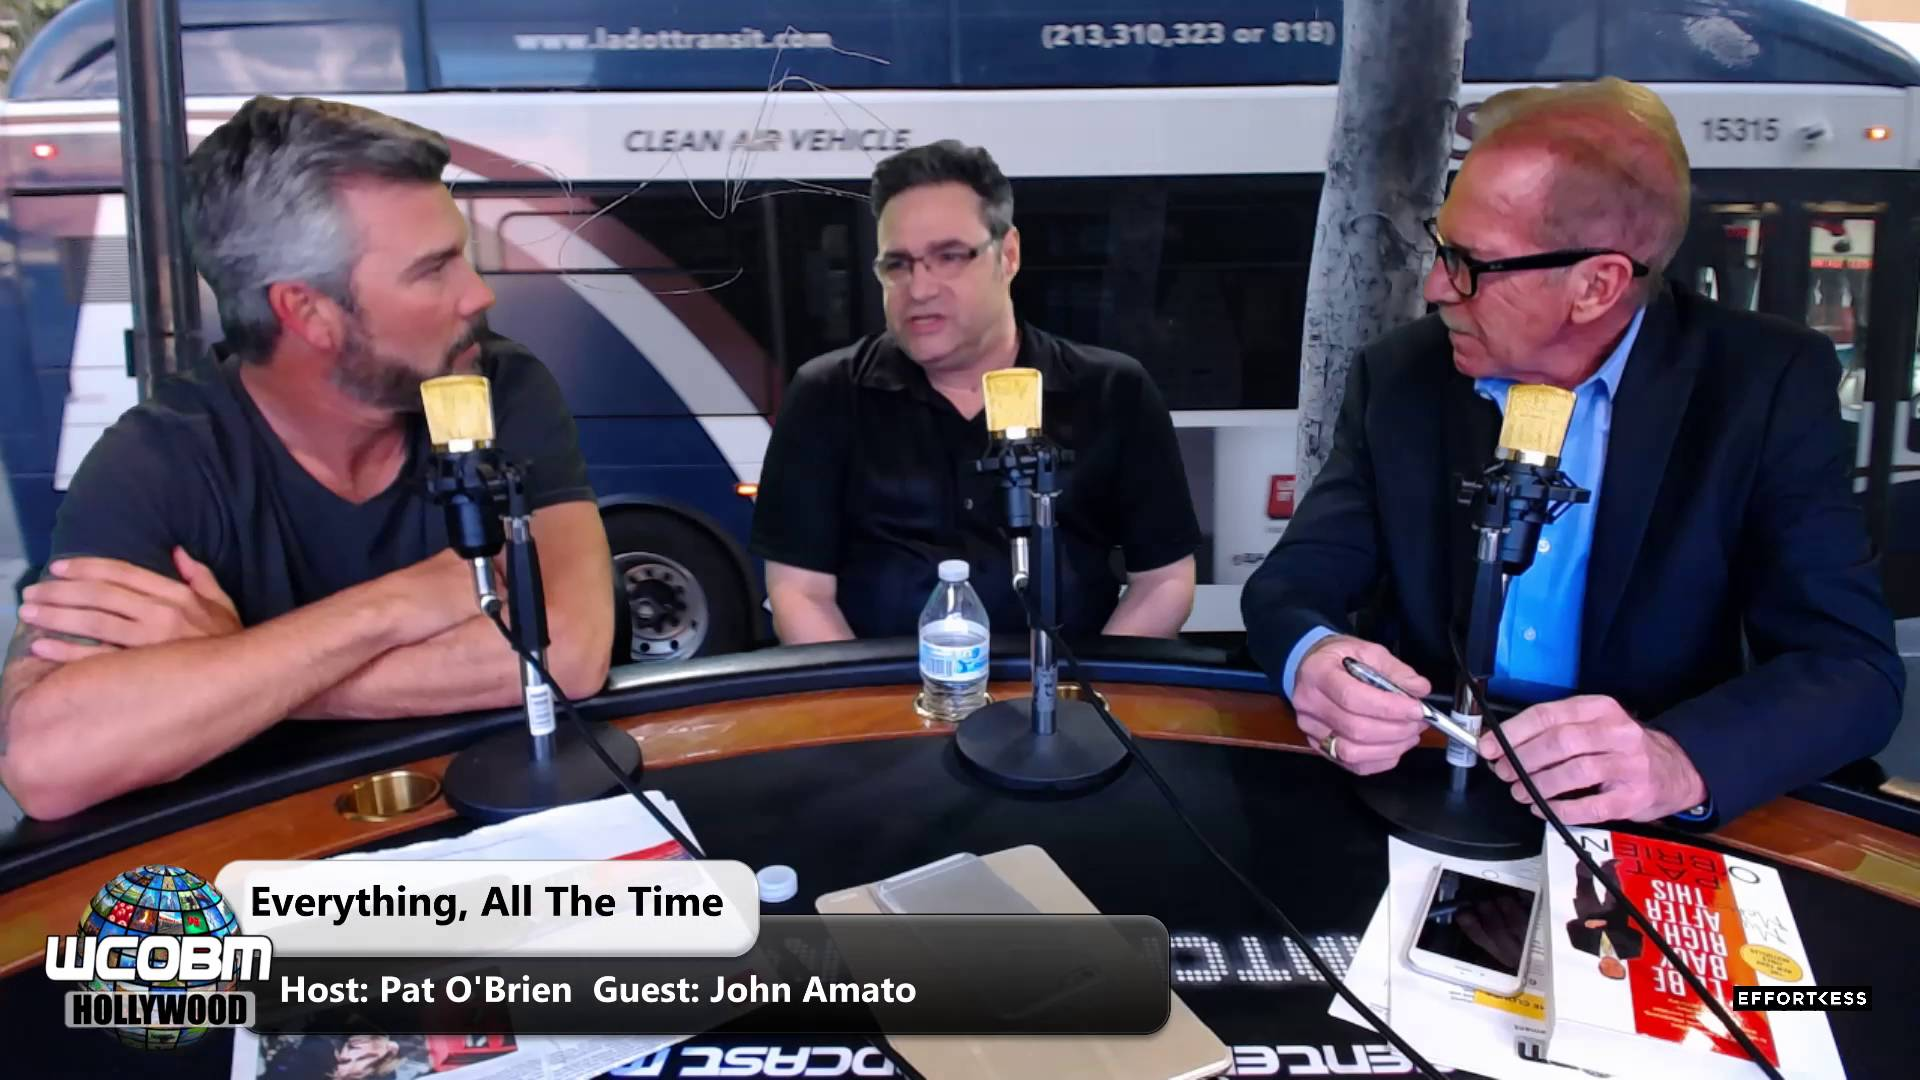 Our Own John Amato On 'Everything All The Time' With Pat O'Brien